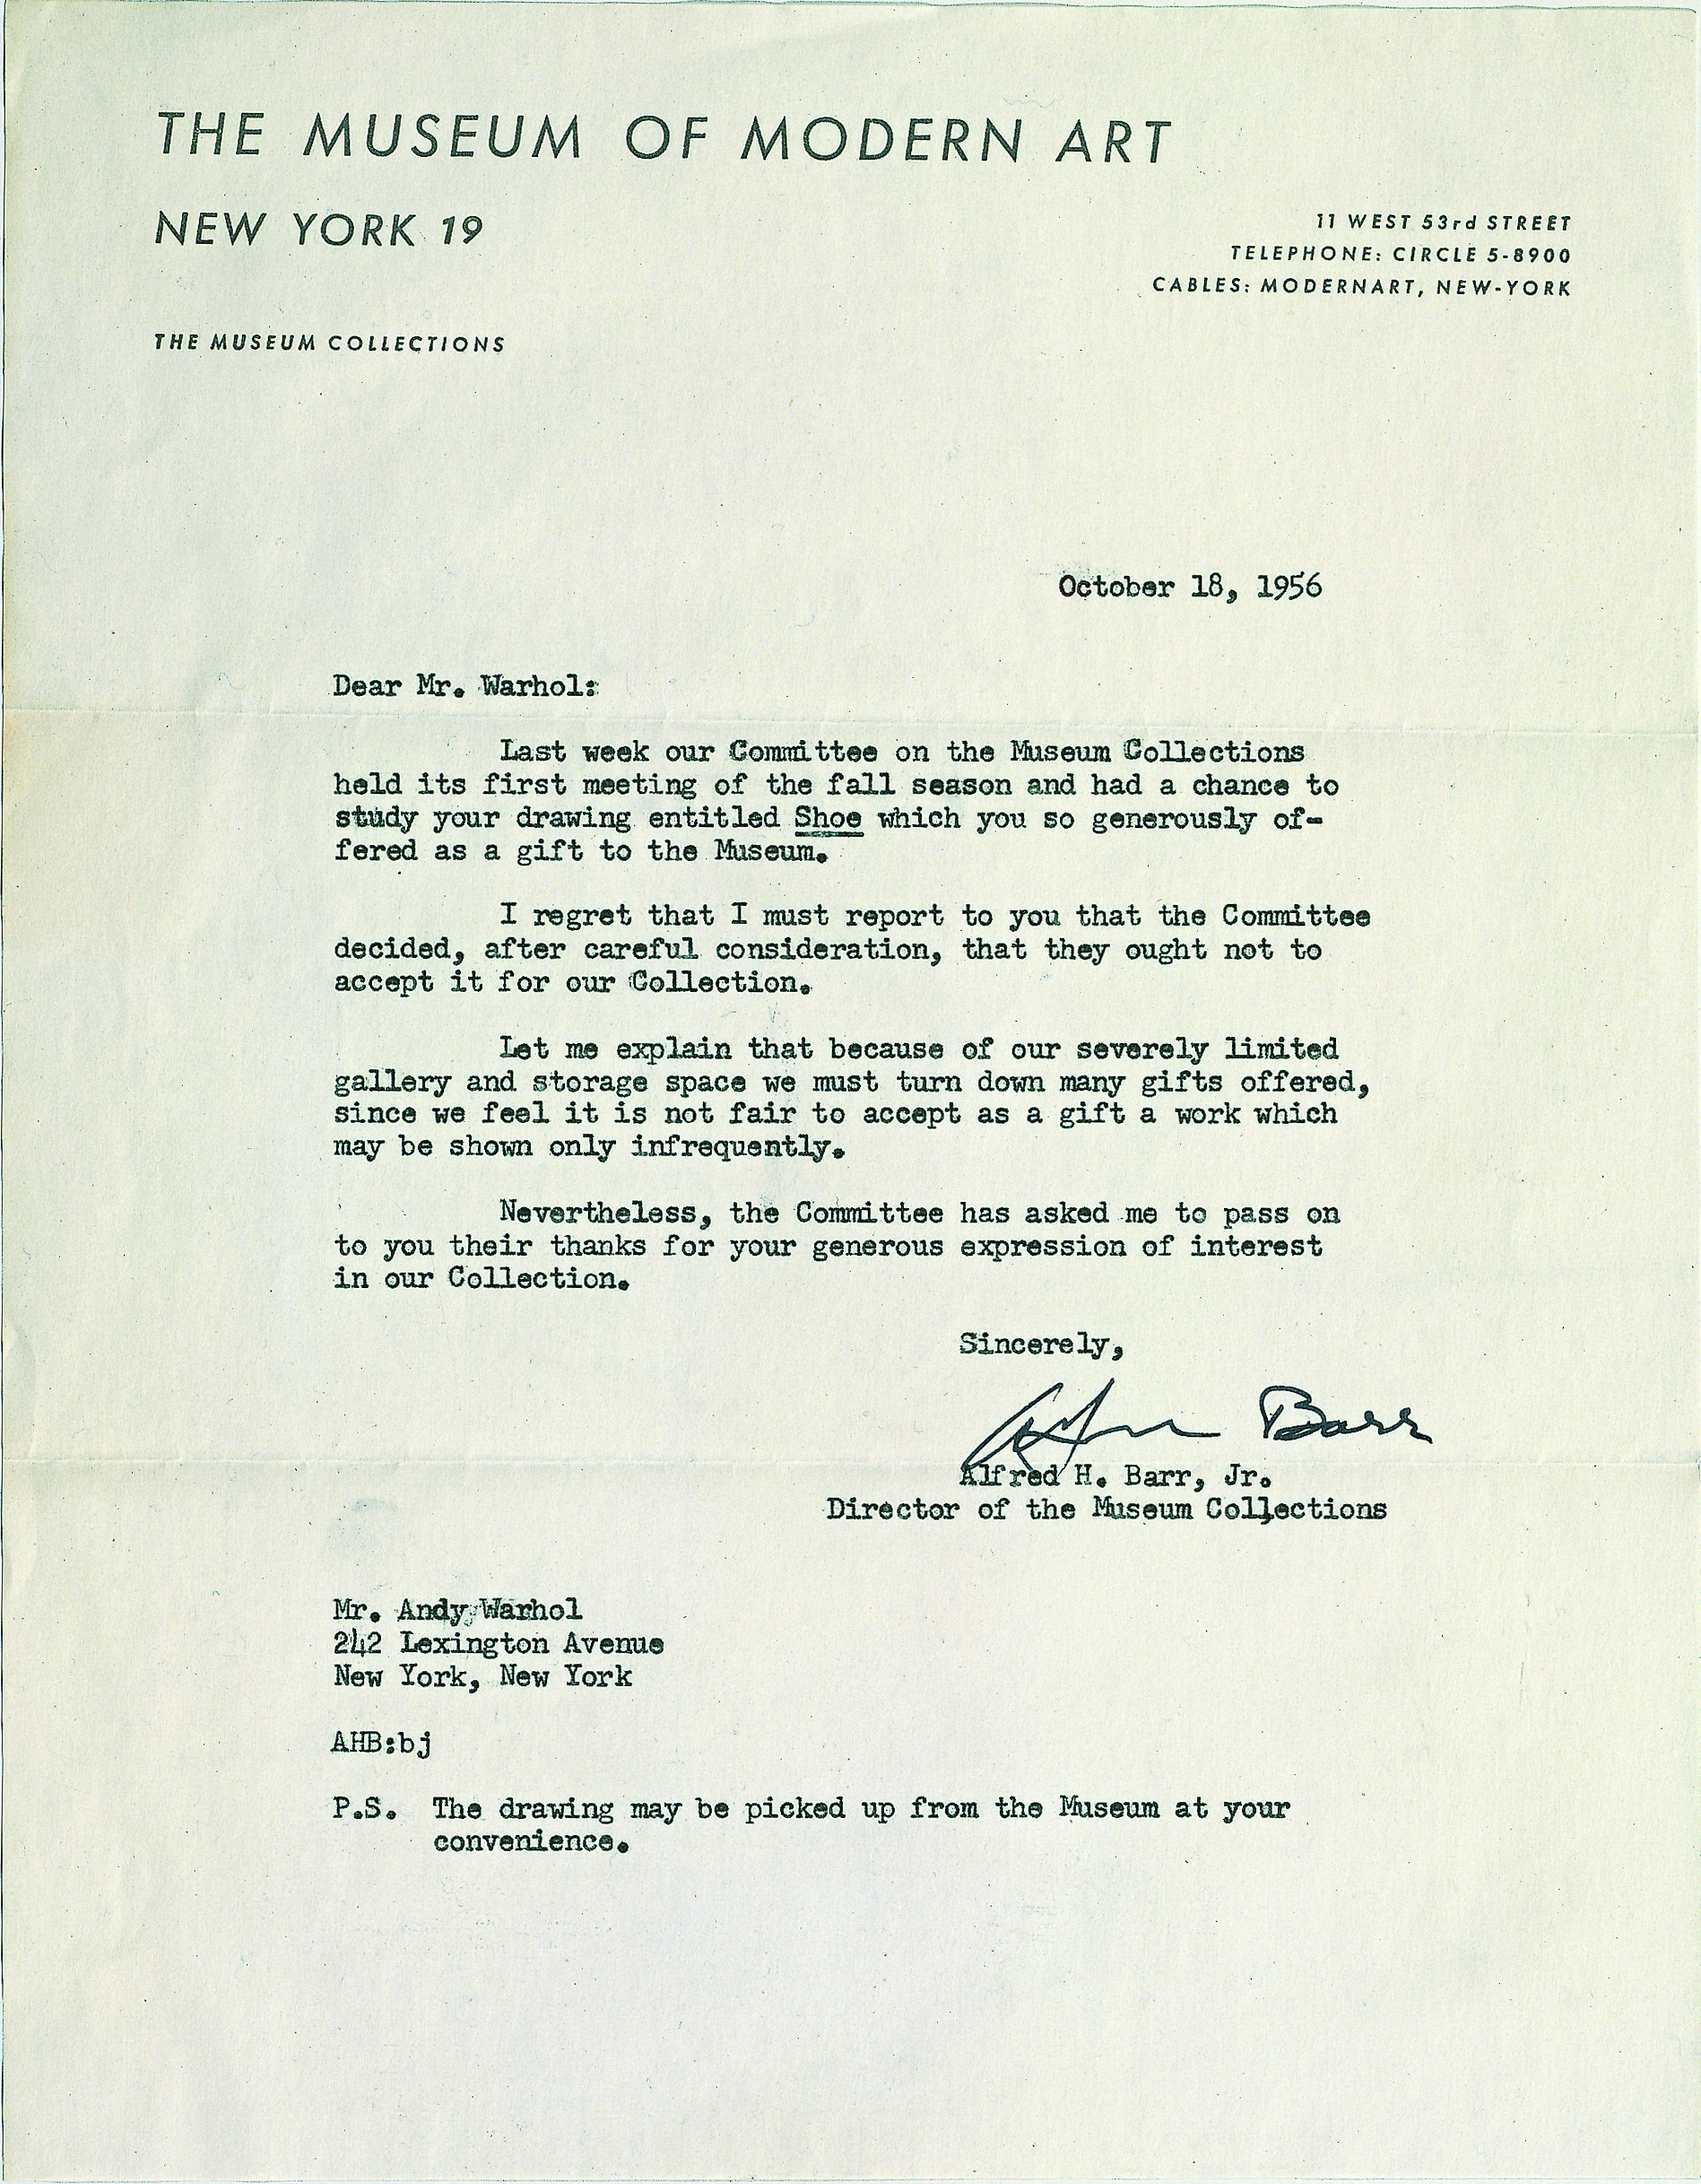 Warhol's MoMA rejection letter, as reproduced in Andy Warhol Giant Size